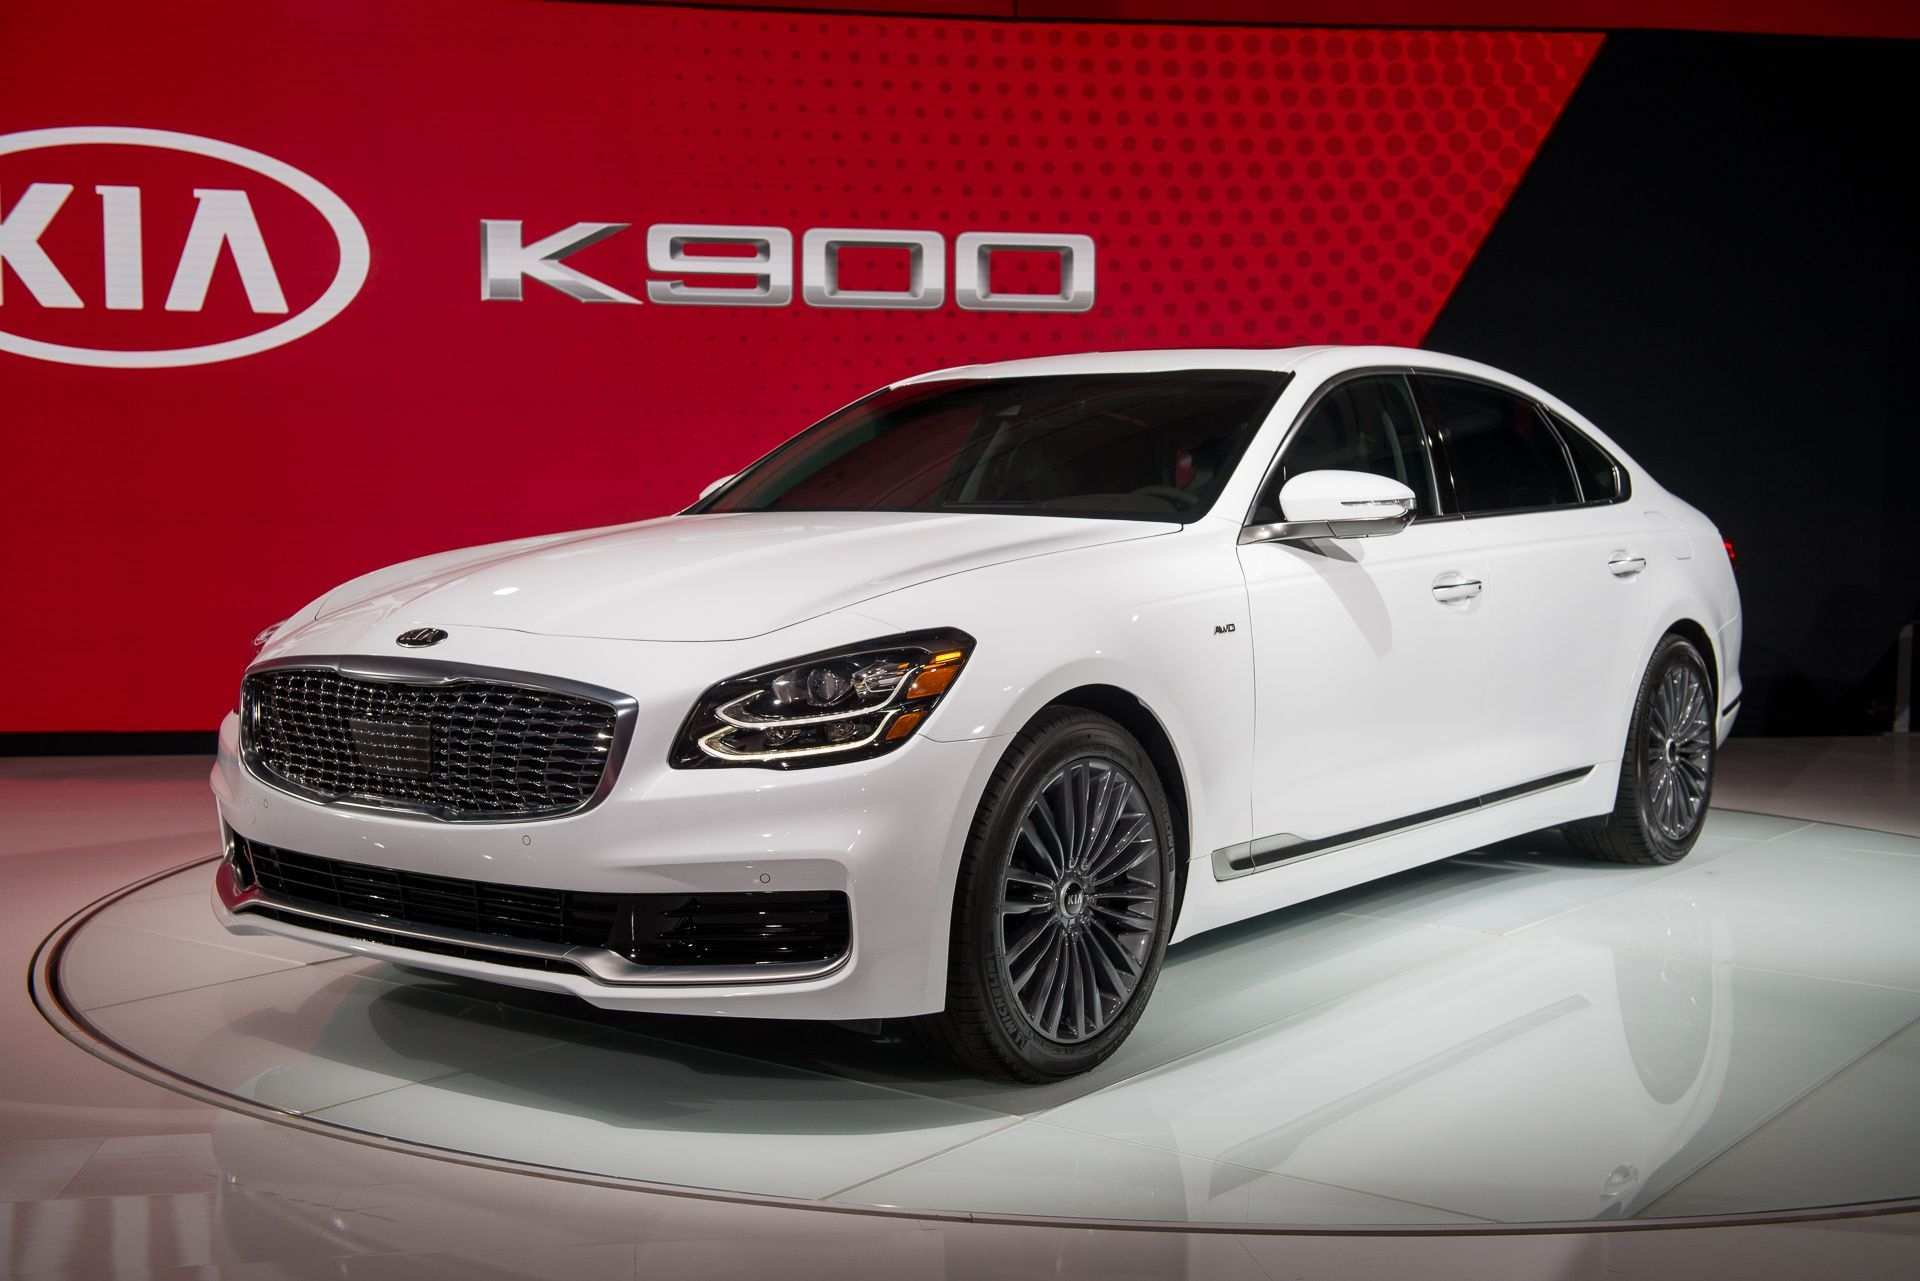 87 All New 2020 Kia K900 Price with 2020 Kia K900